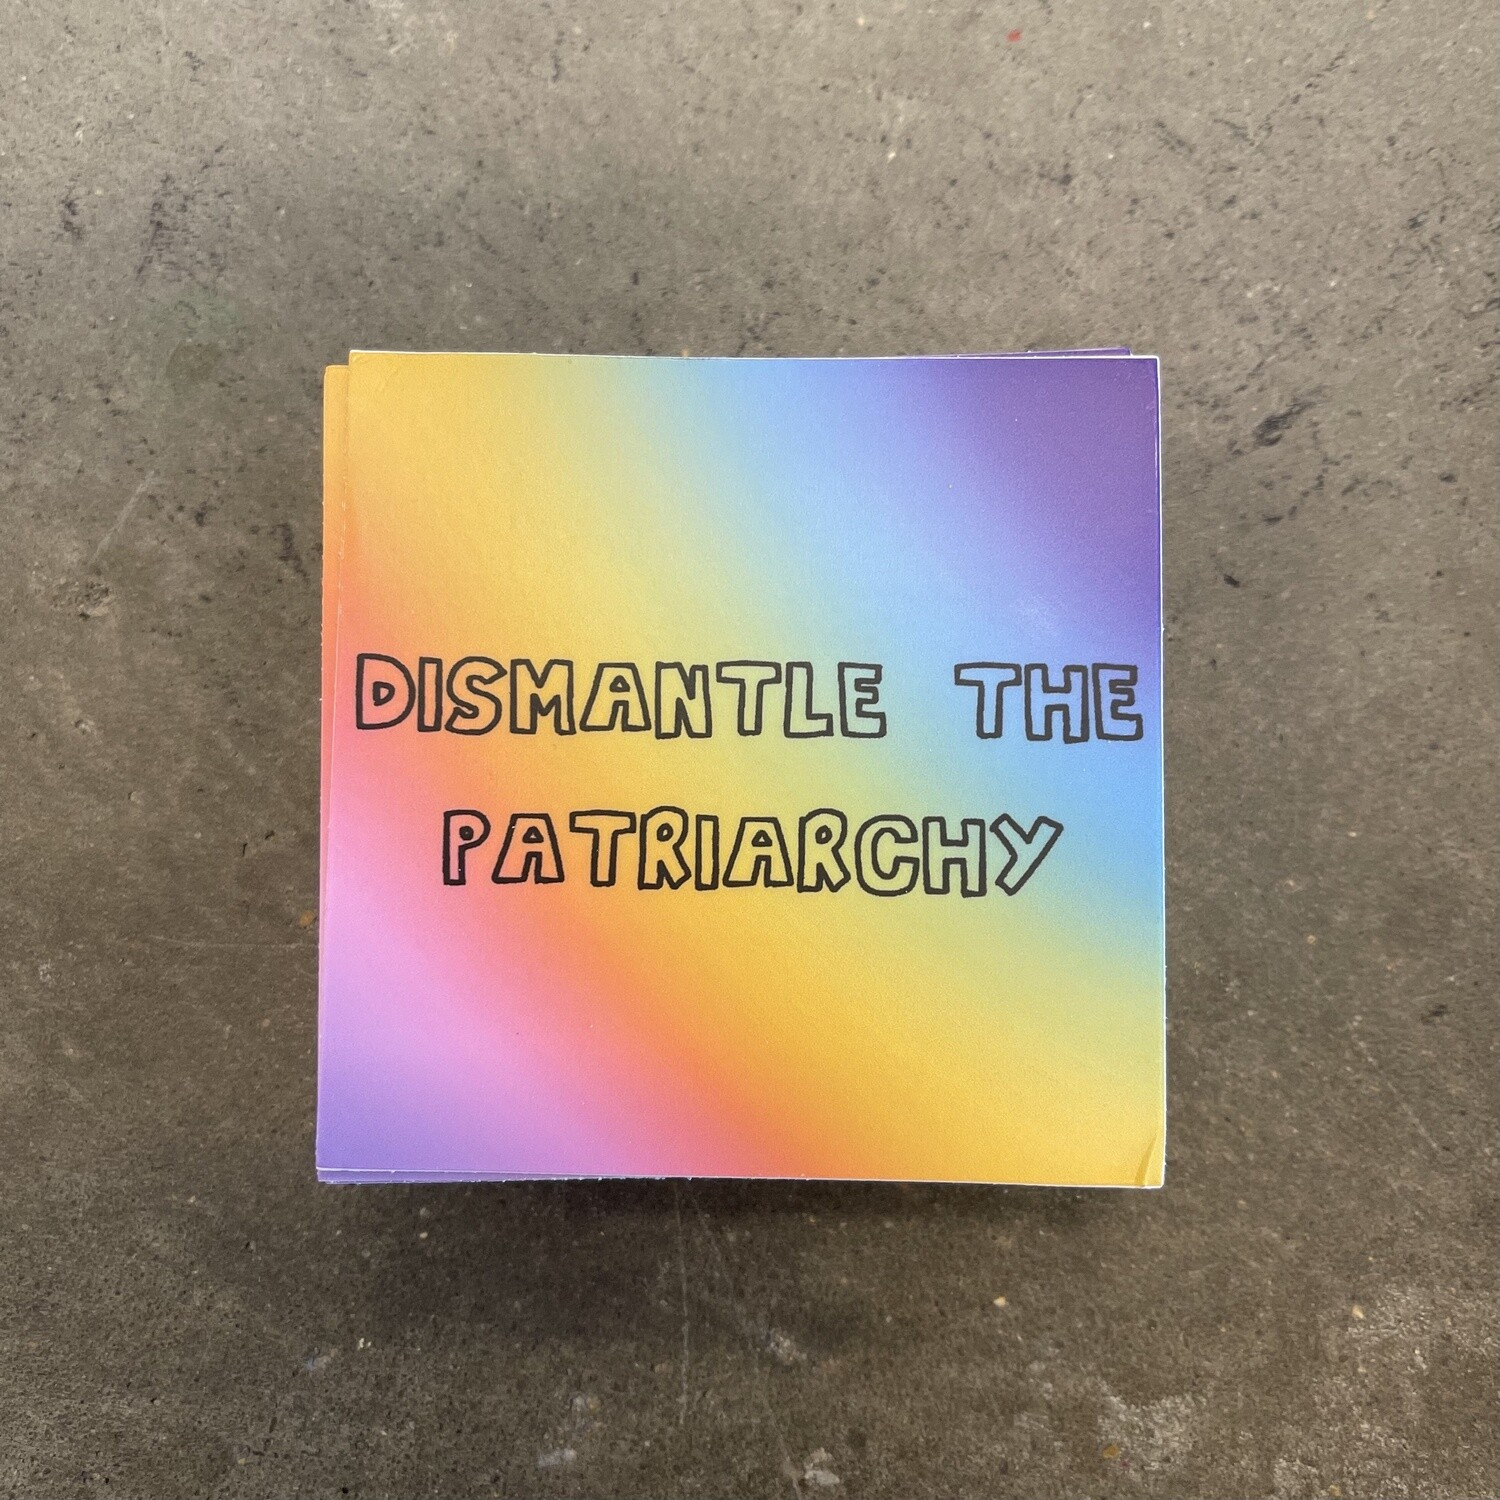 Dismantle The Patriarchy (sticker)